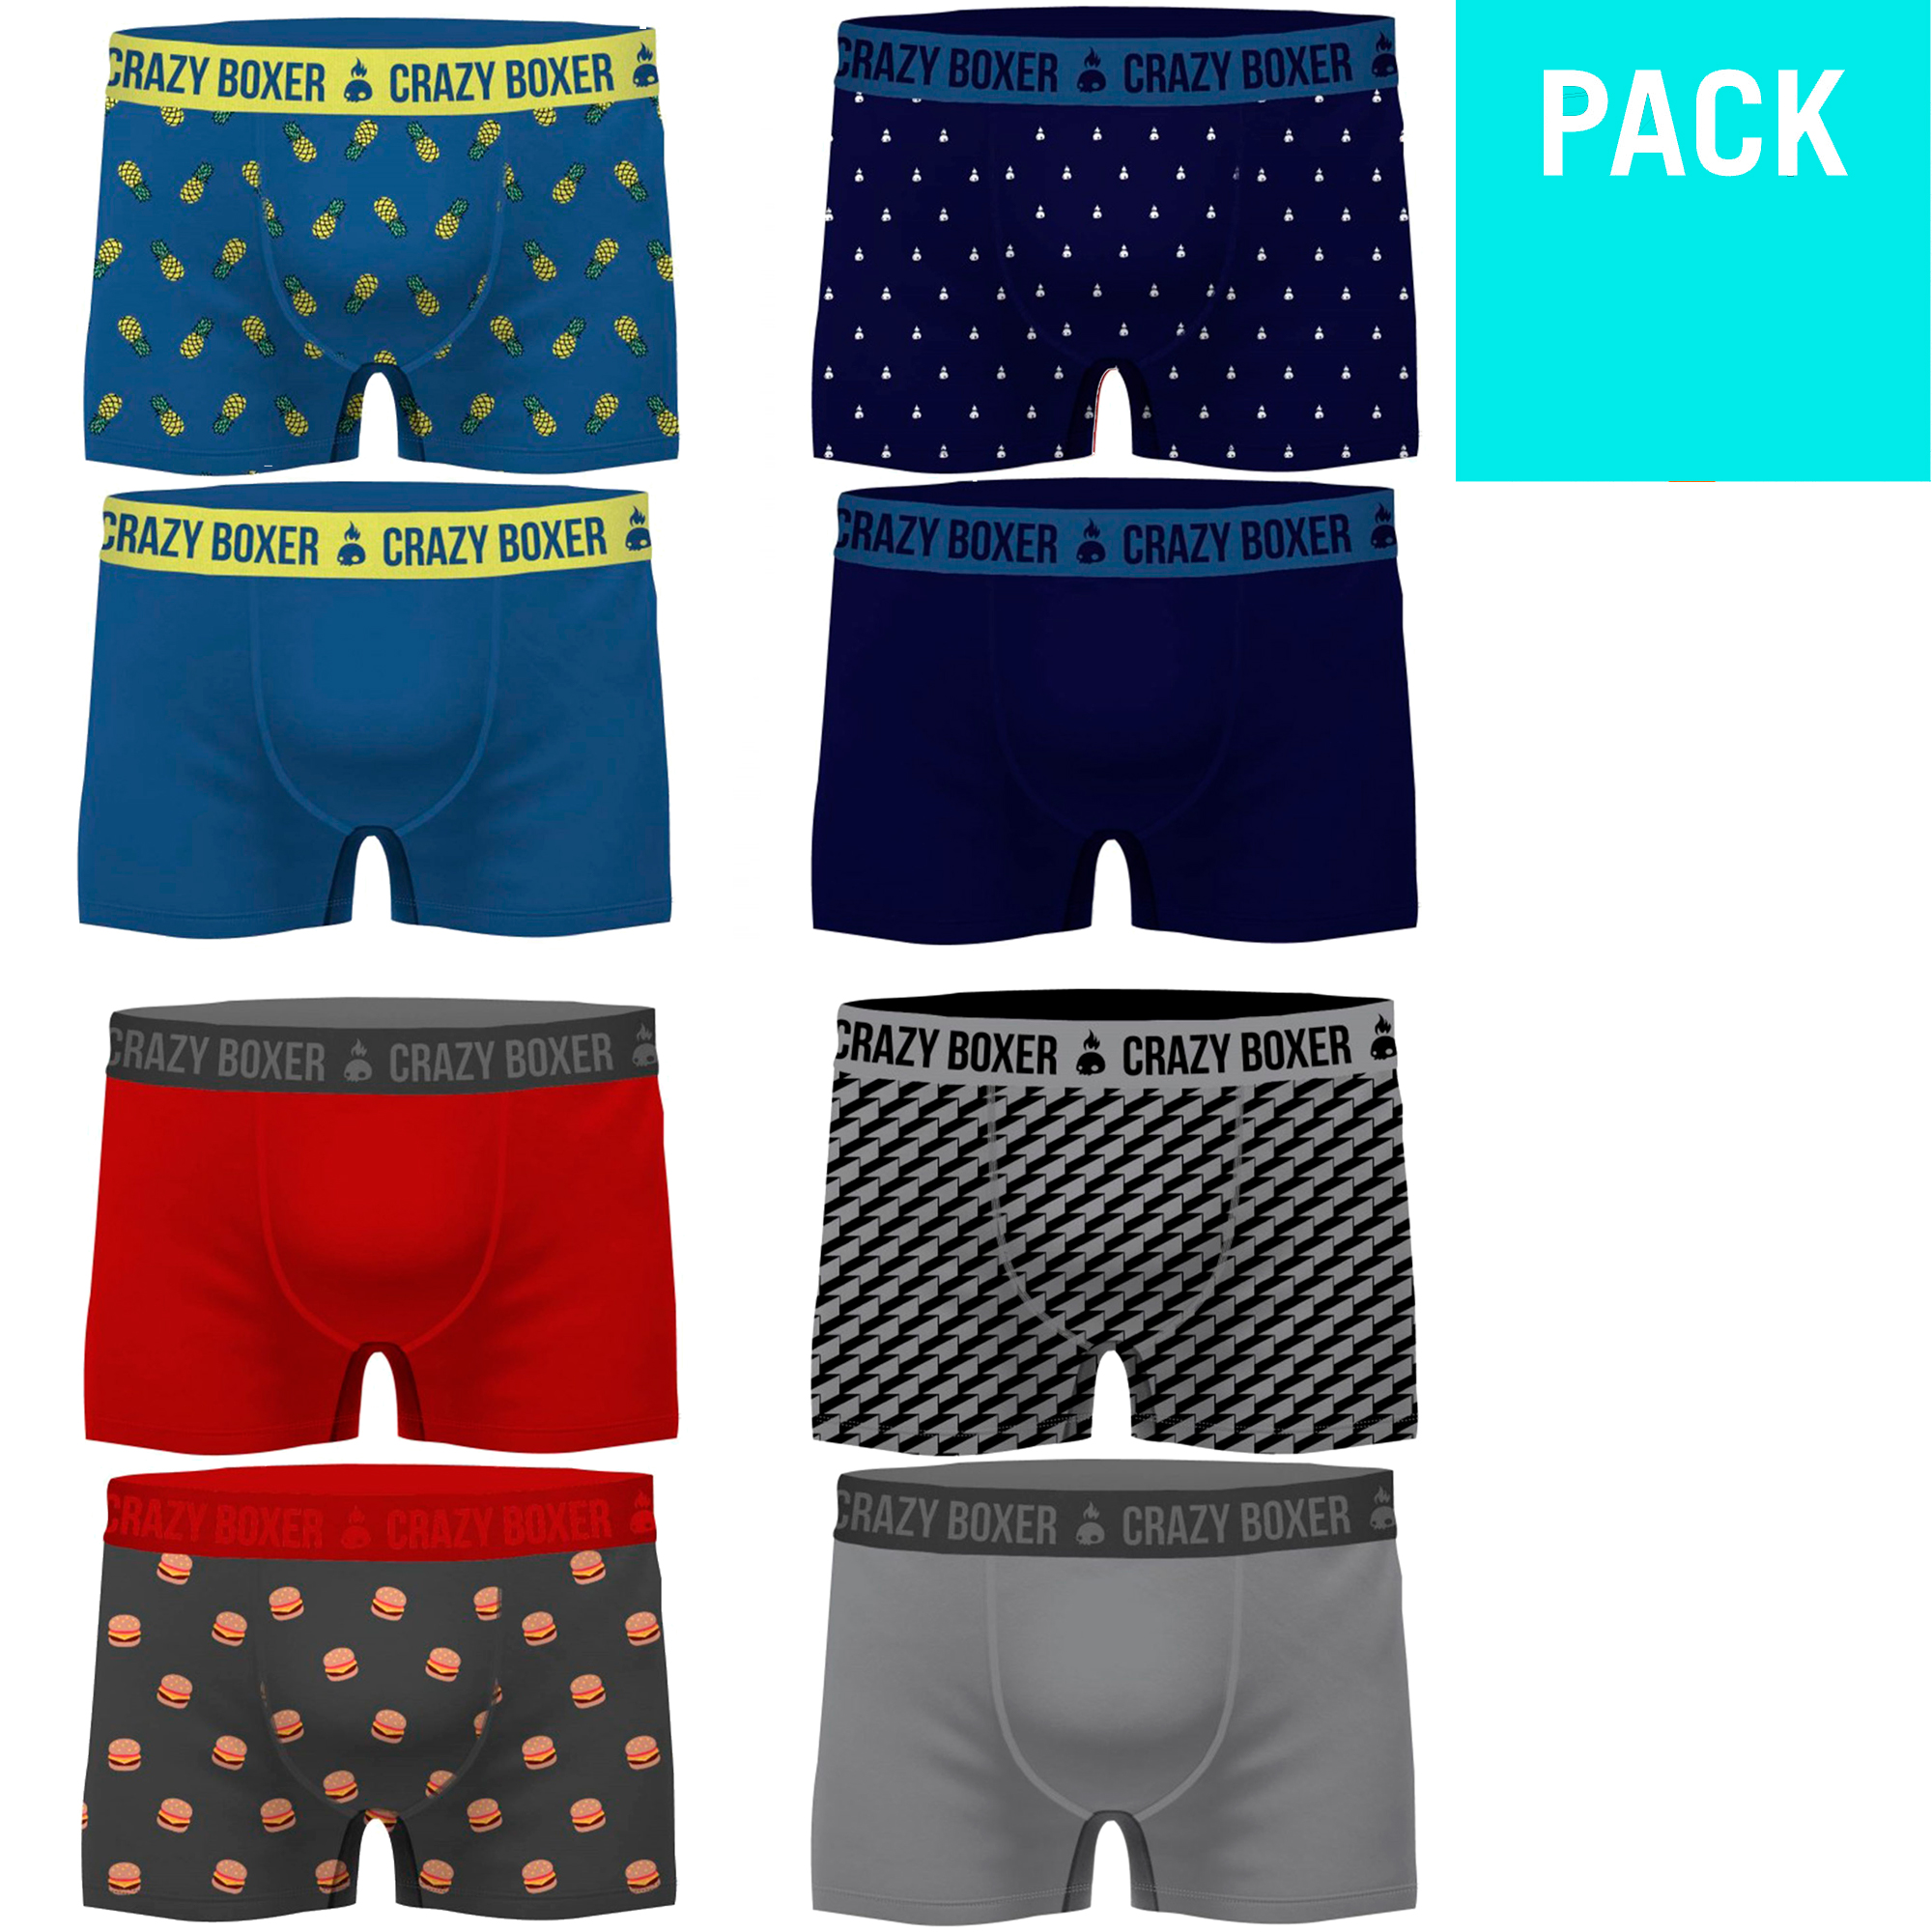 CRAZY BOXERS Pack 8 Or 2 Briefs Printed Fabrics In Various Models For Men In Cotton Biologico